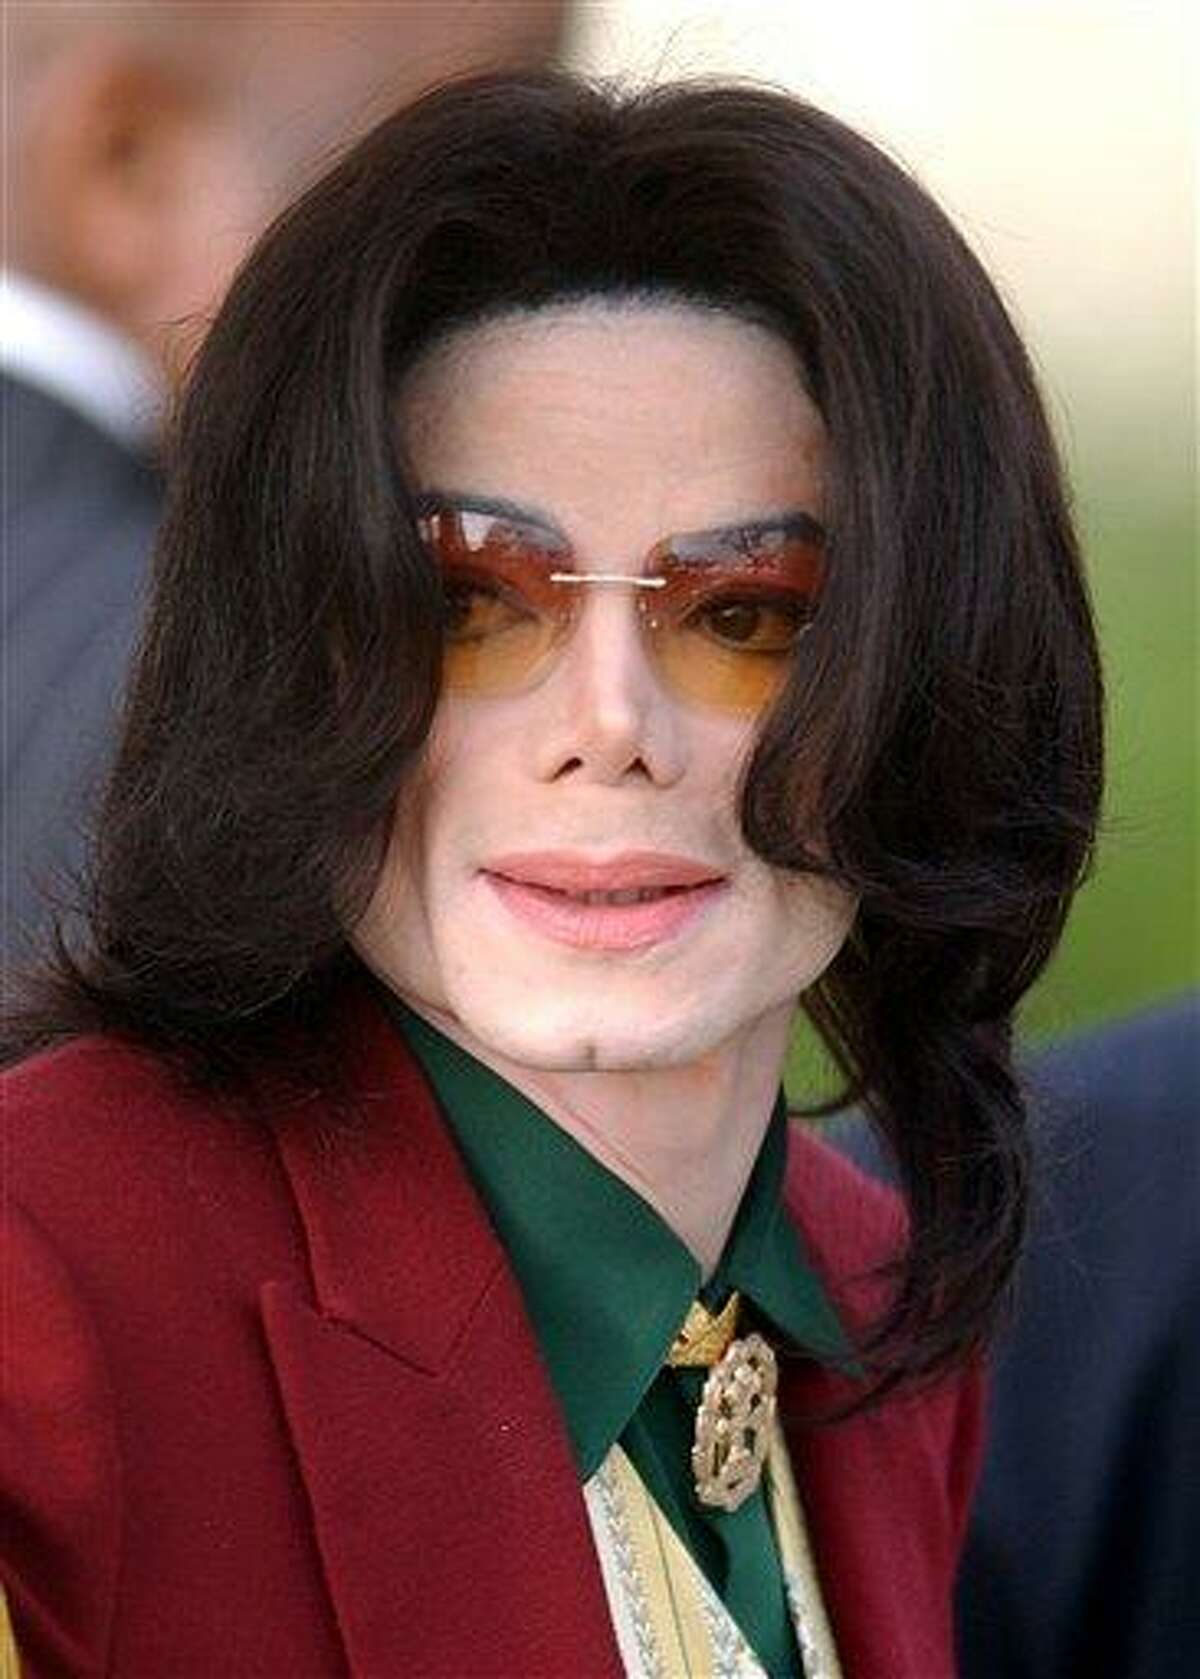 FILE - In this March 17, 2005 file photo, pop star Michael Jackson arrives at the Santa Barbara County Courthouse in Santa Maria, Calif. (AP Photo/Michael A. Mariant, file)